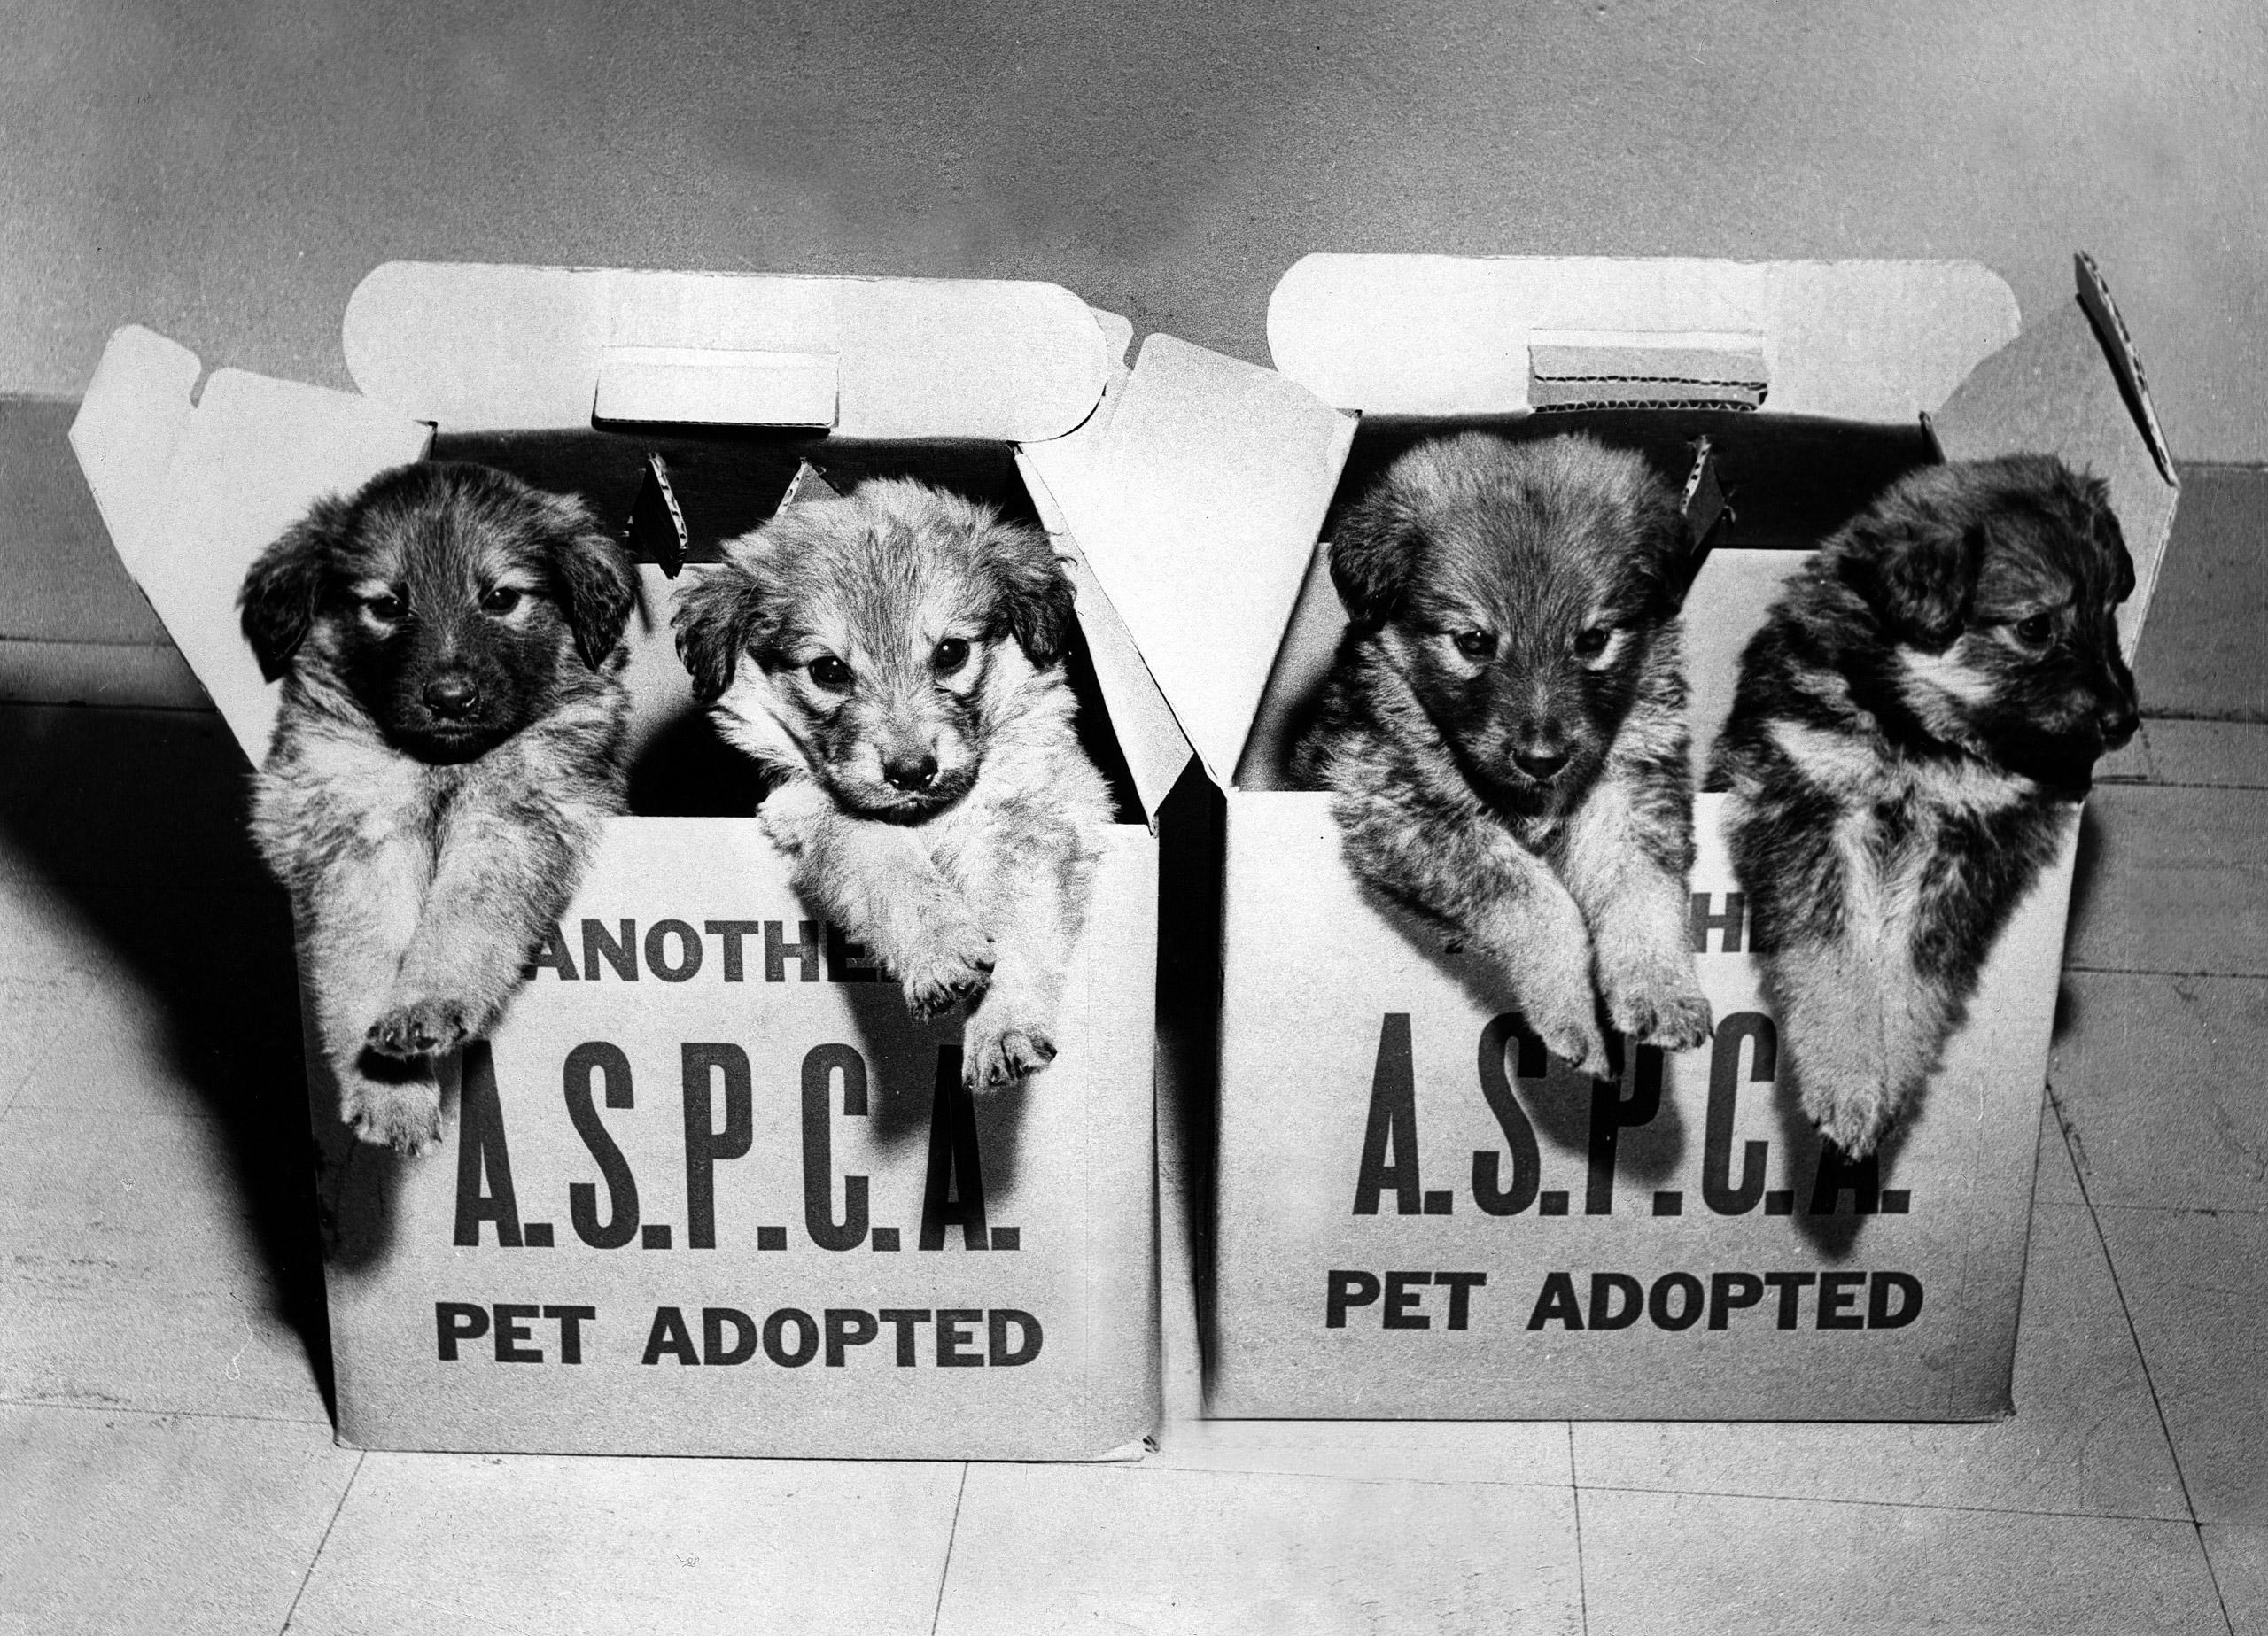 ASPCA rescue puppies in cardboard pet transport boxes, 1970s.